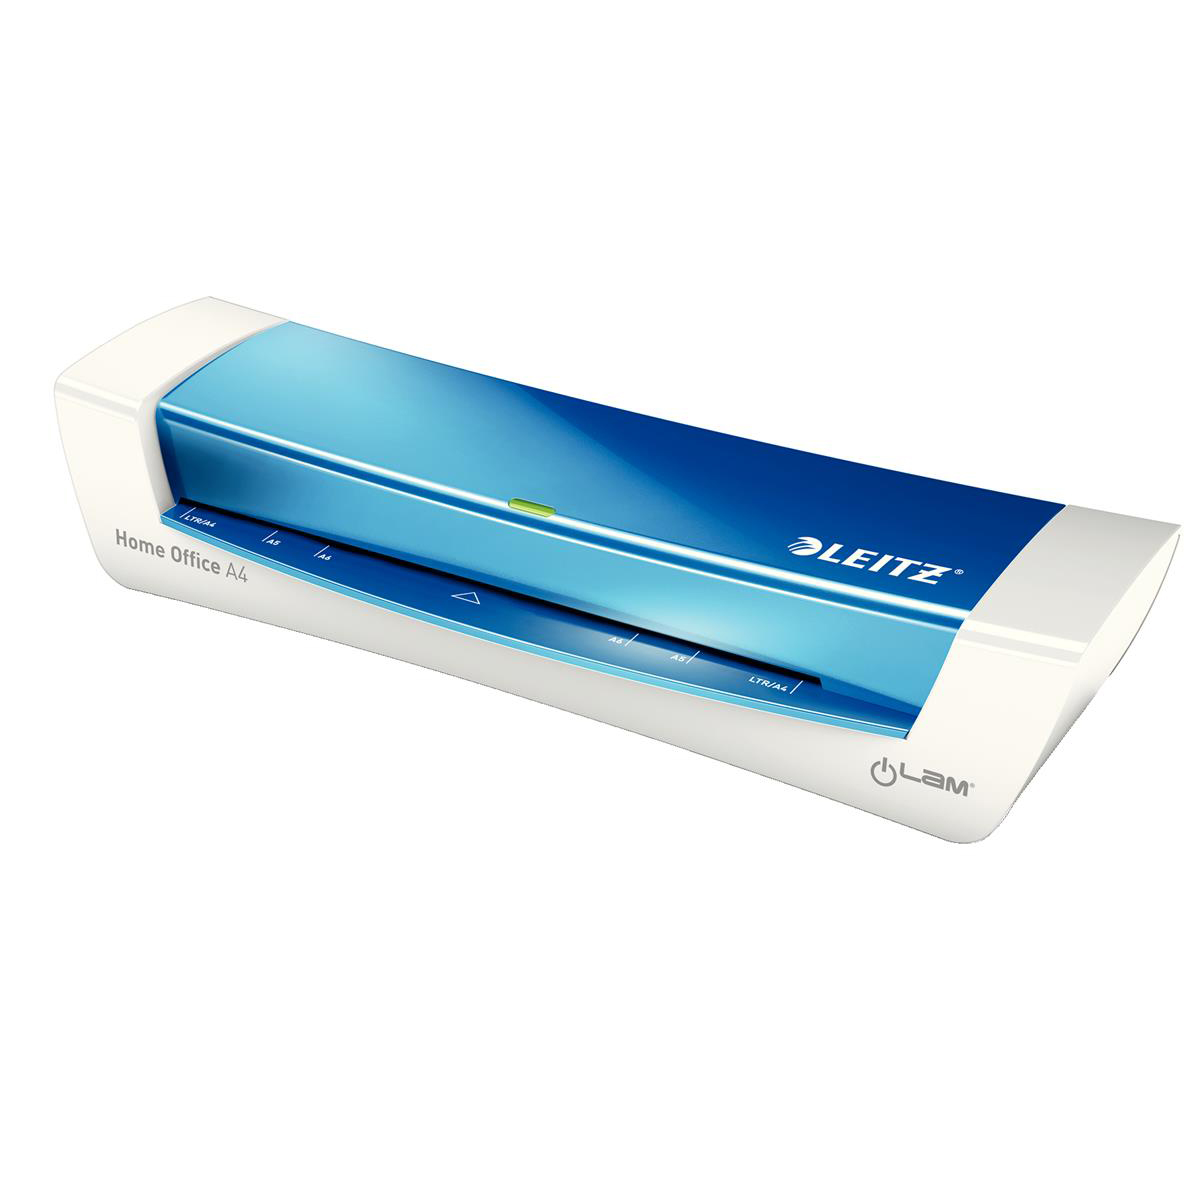 Leitz iLam HomeOffice Laminator A4 Blue Ref 73681036 and Pouches Ref 74780000 [Redemption] May-Sep 2018